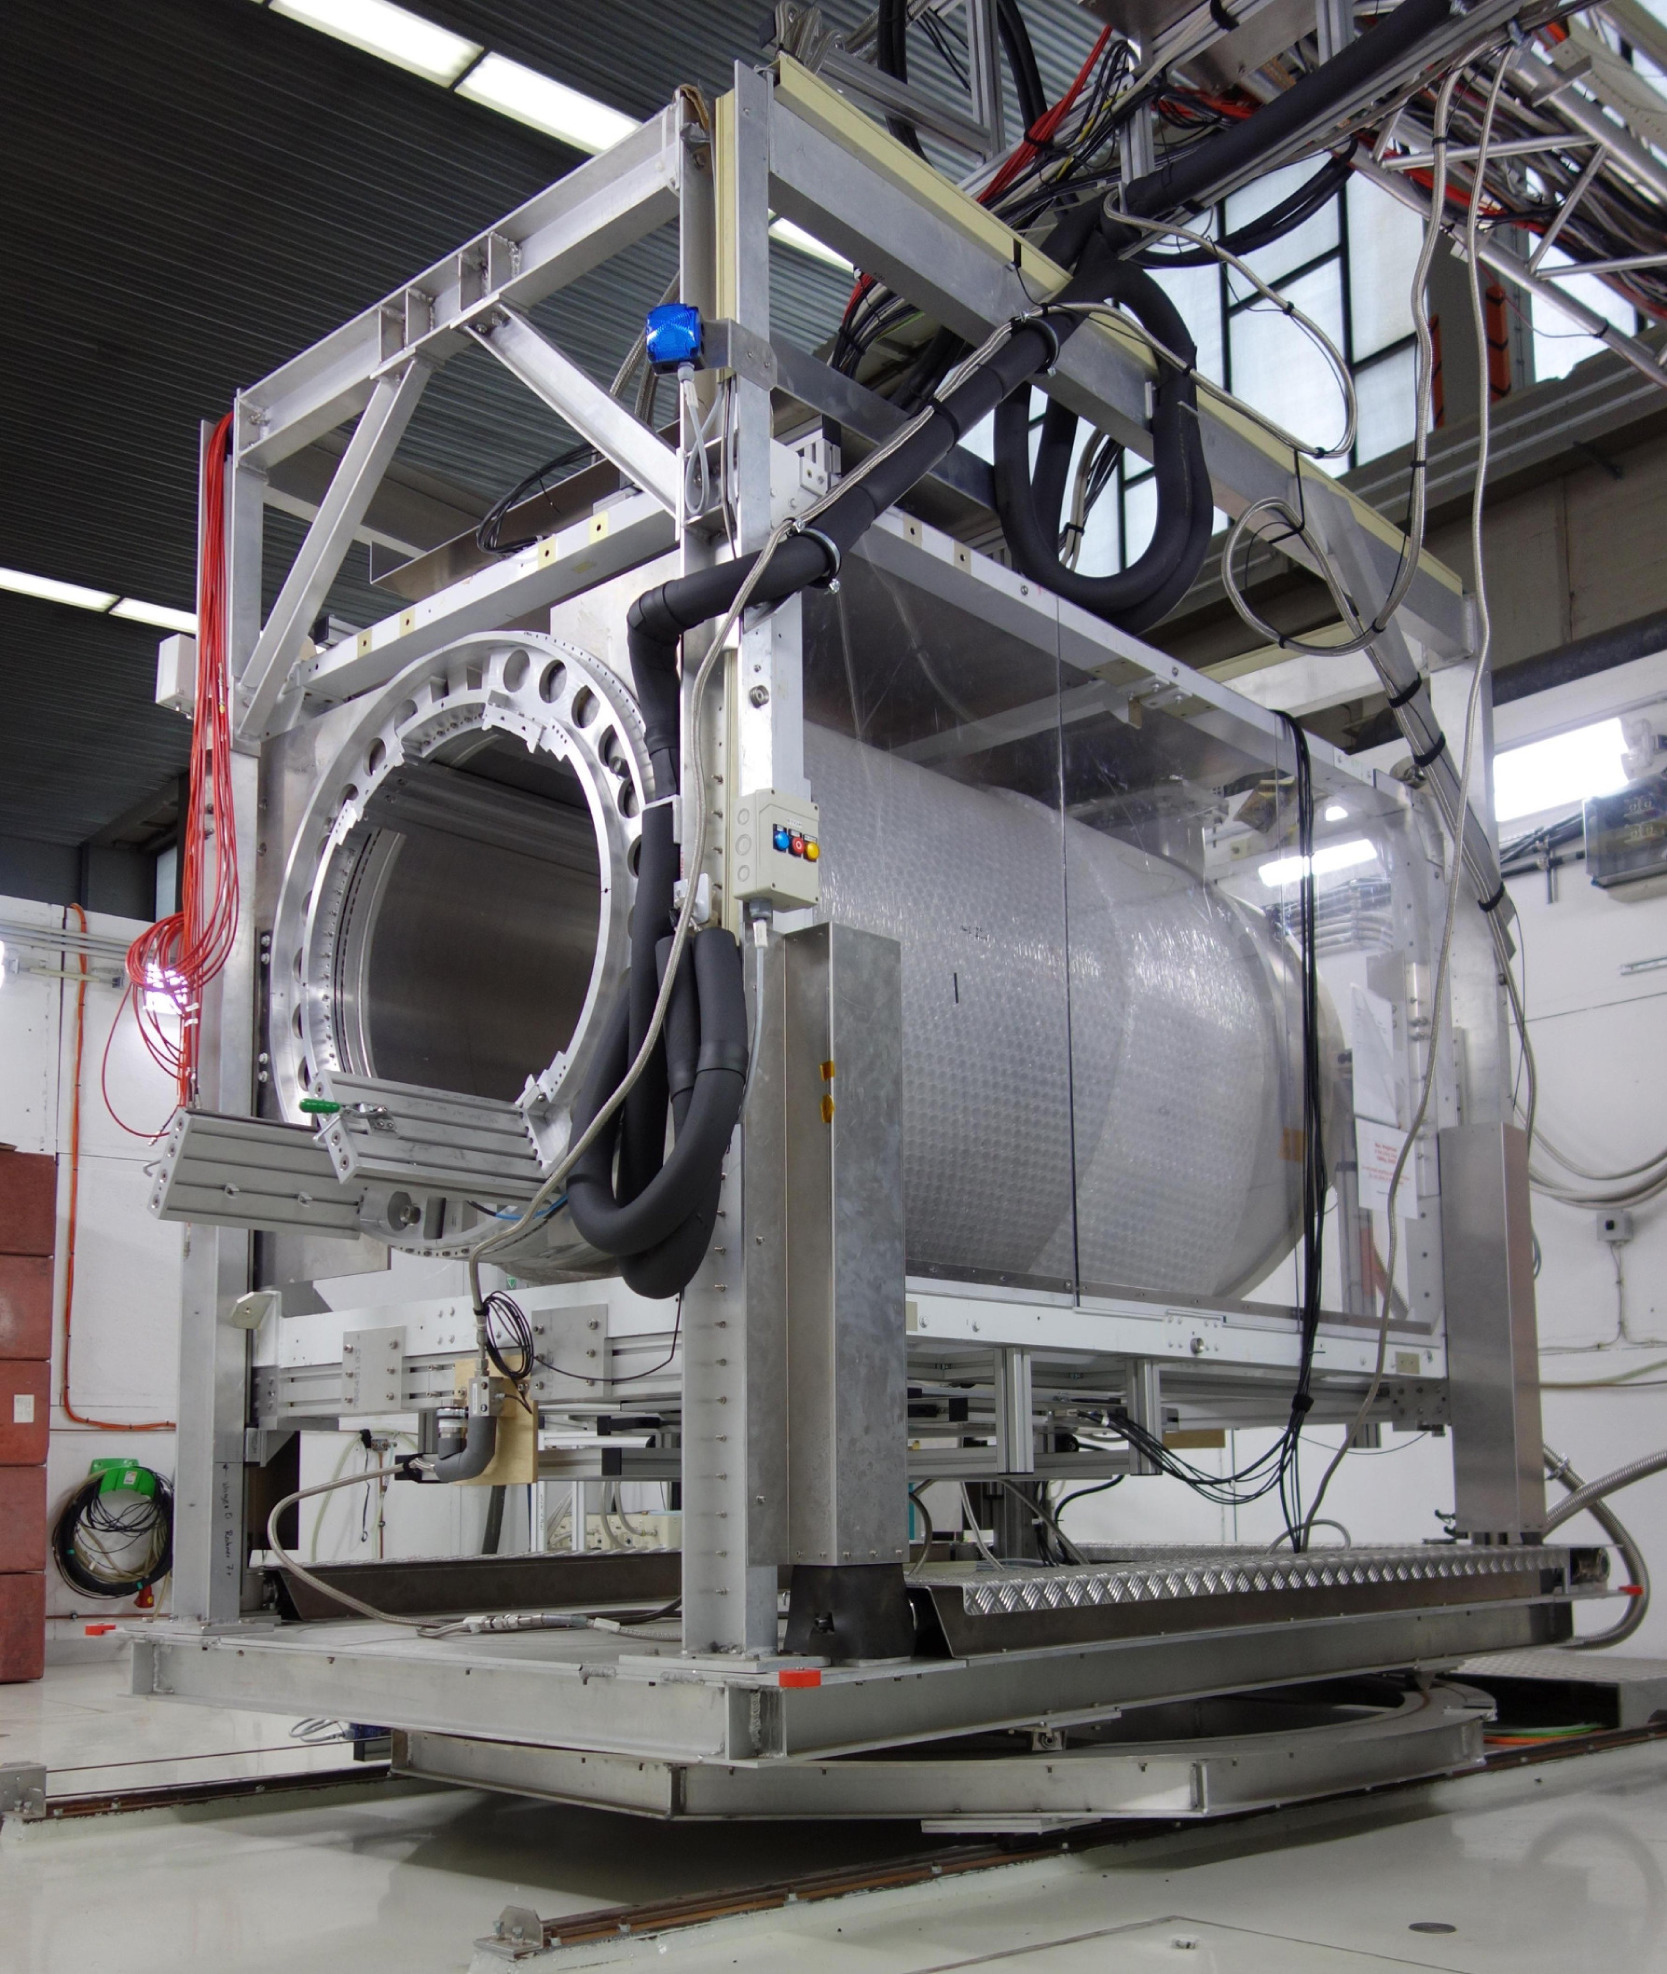 The Desy Ii Test Beam Facility Sciencedirect Complete Atlas Wiring Book Download Full Size Image